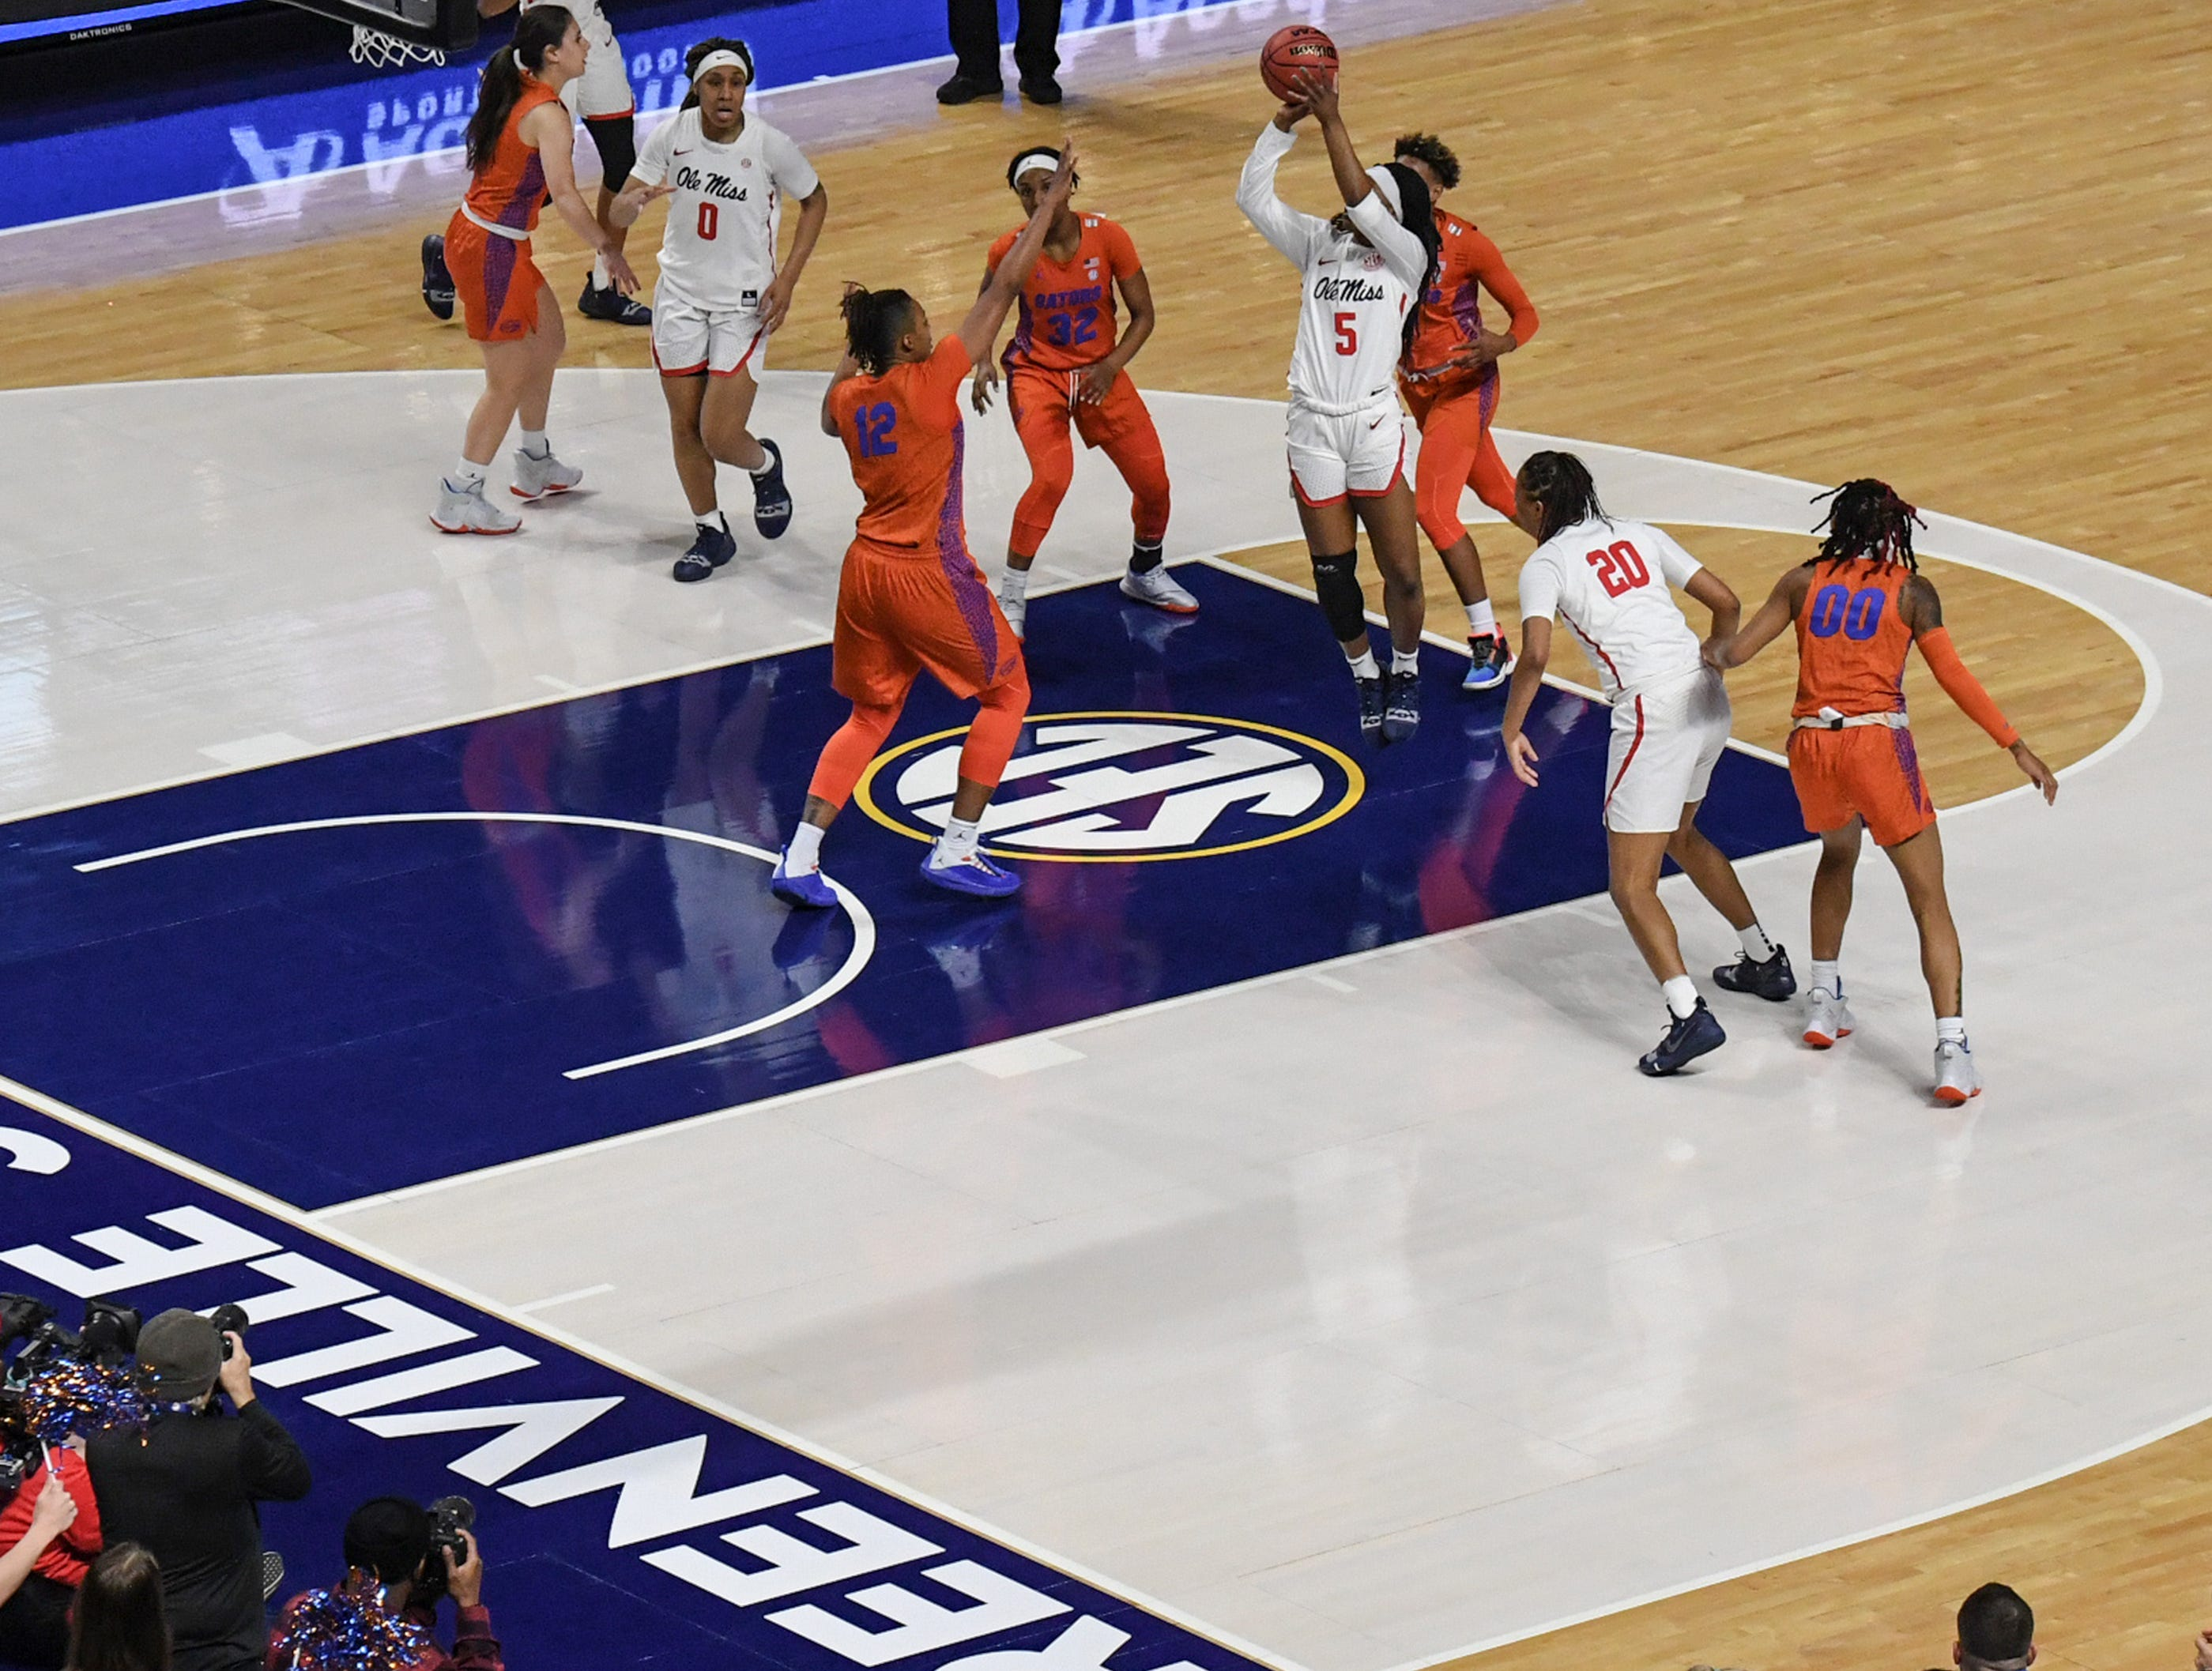 Ole Miss senior Crystal Allen(5) dribbles near Florida defenders during the first quarter of the Southeastern Conference Women's Tournament game at Bon Secour Wellness Arena in Greenville Wednesday, March 6, 2019.